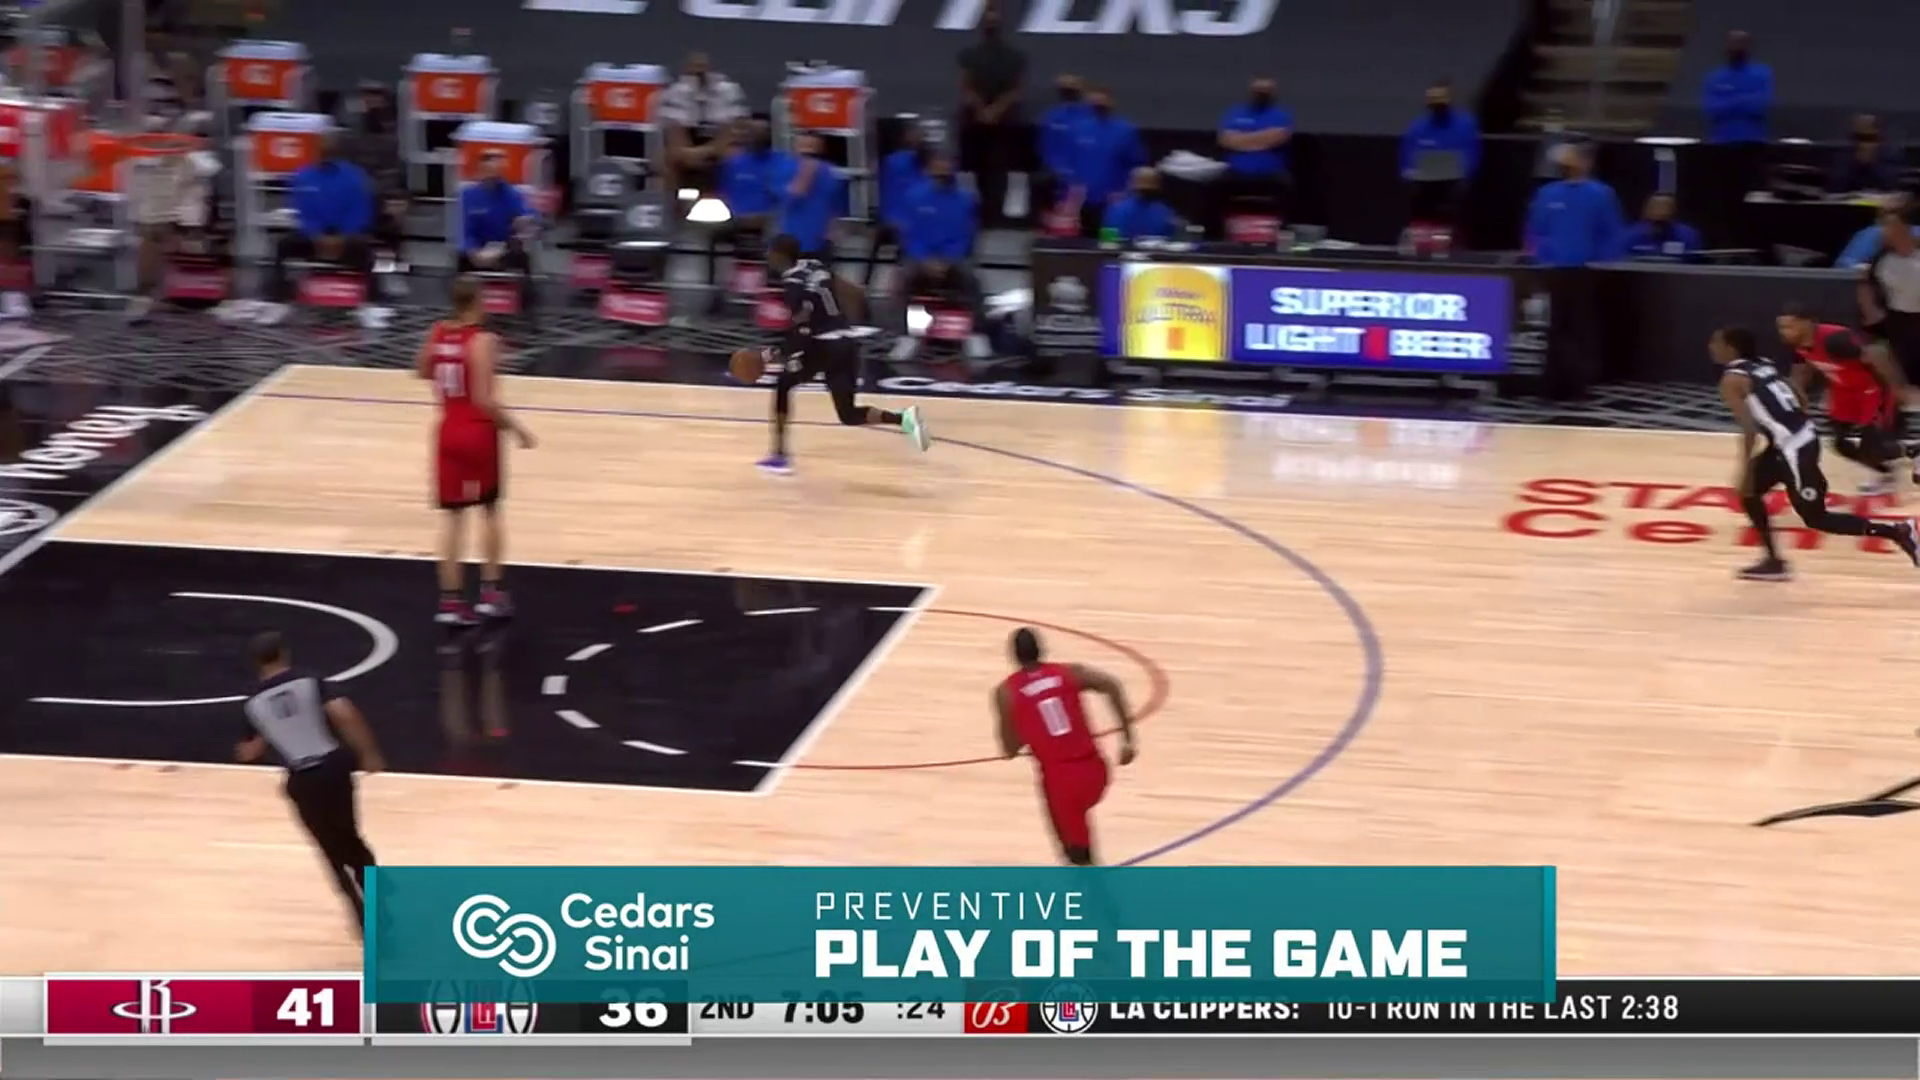 Cedars-Sinai Preventive Play of the Game | Clippers vs Rockets (4.9.21)